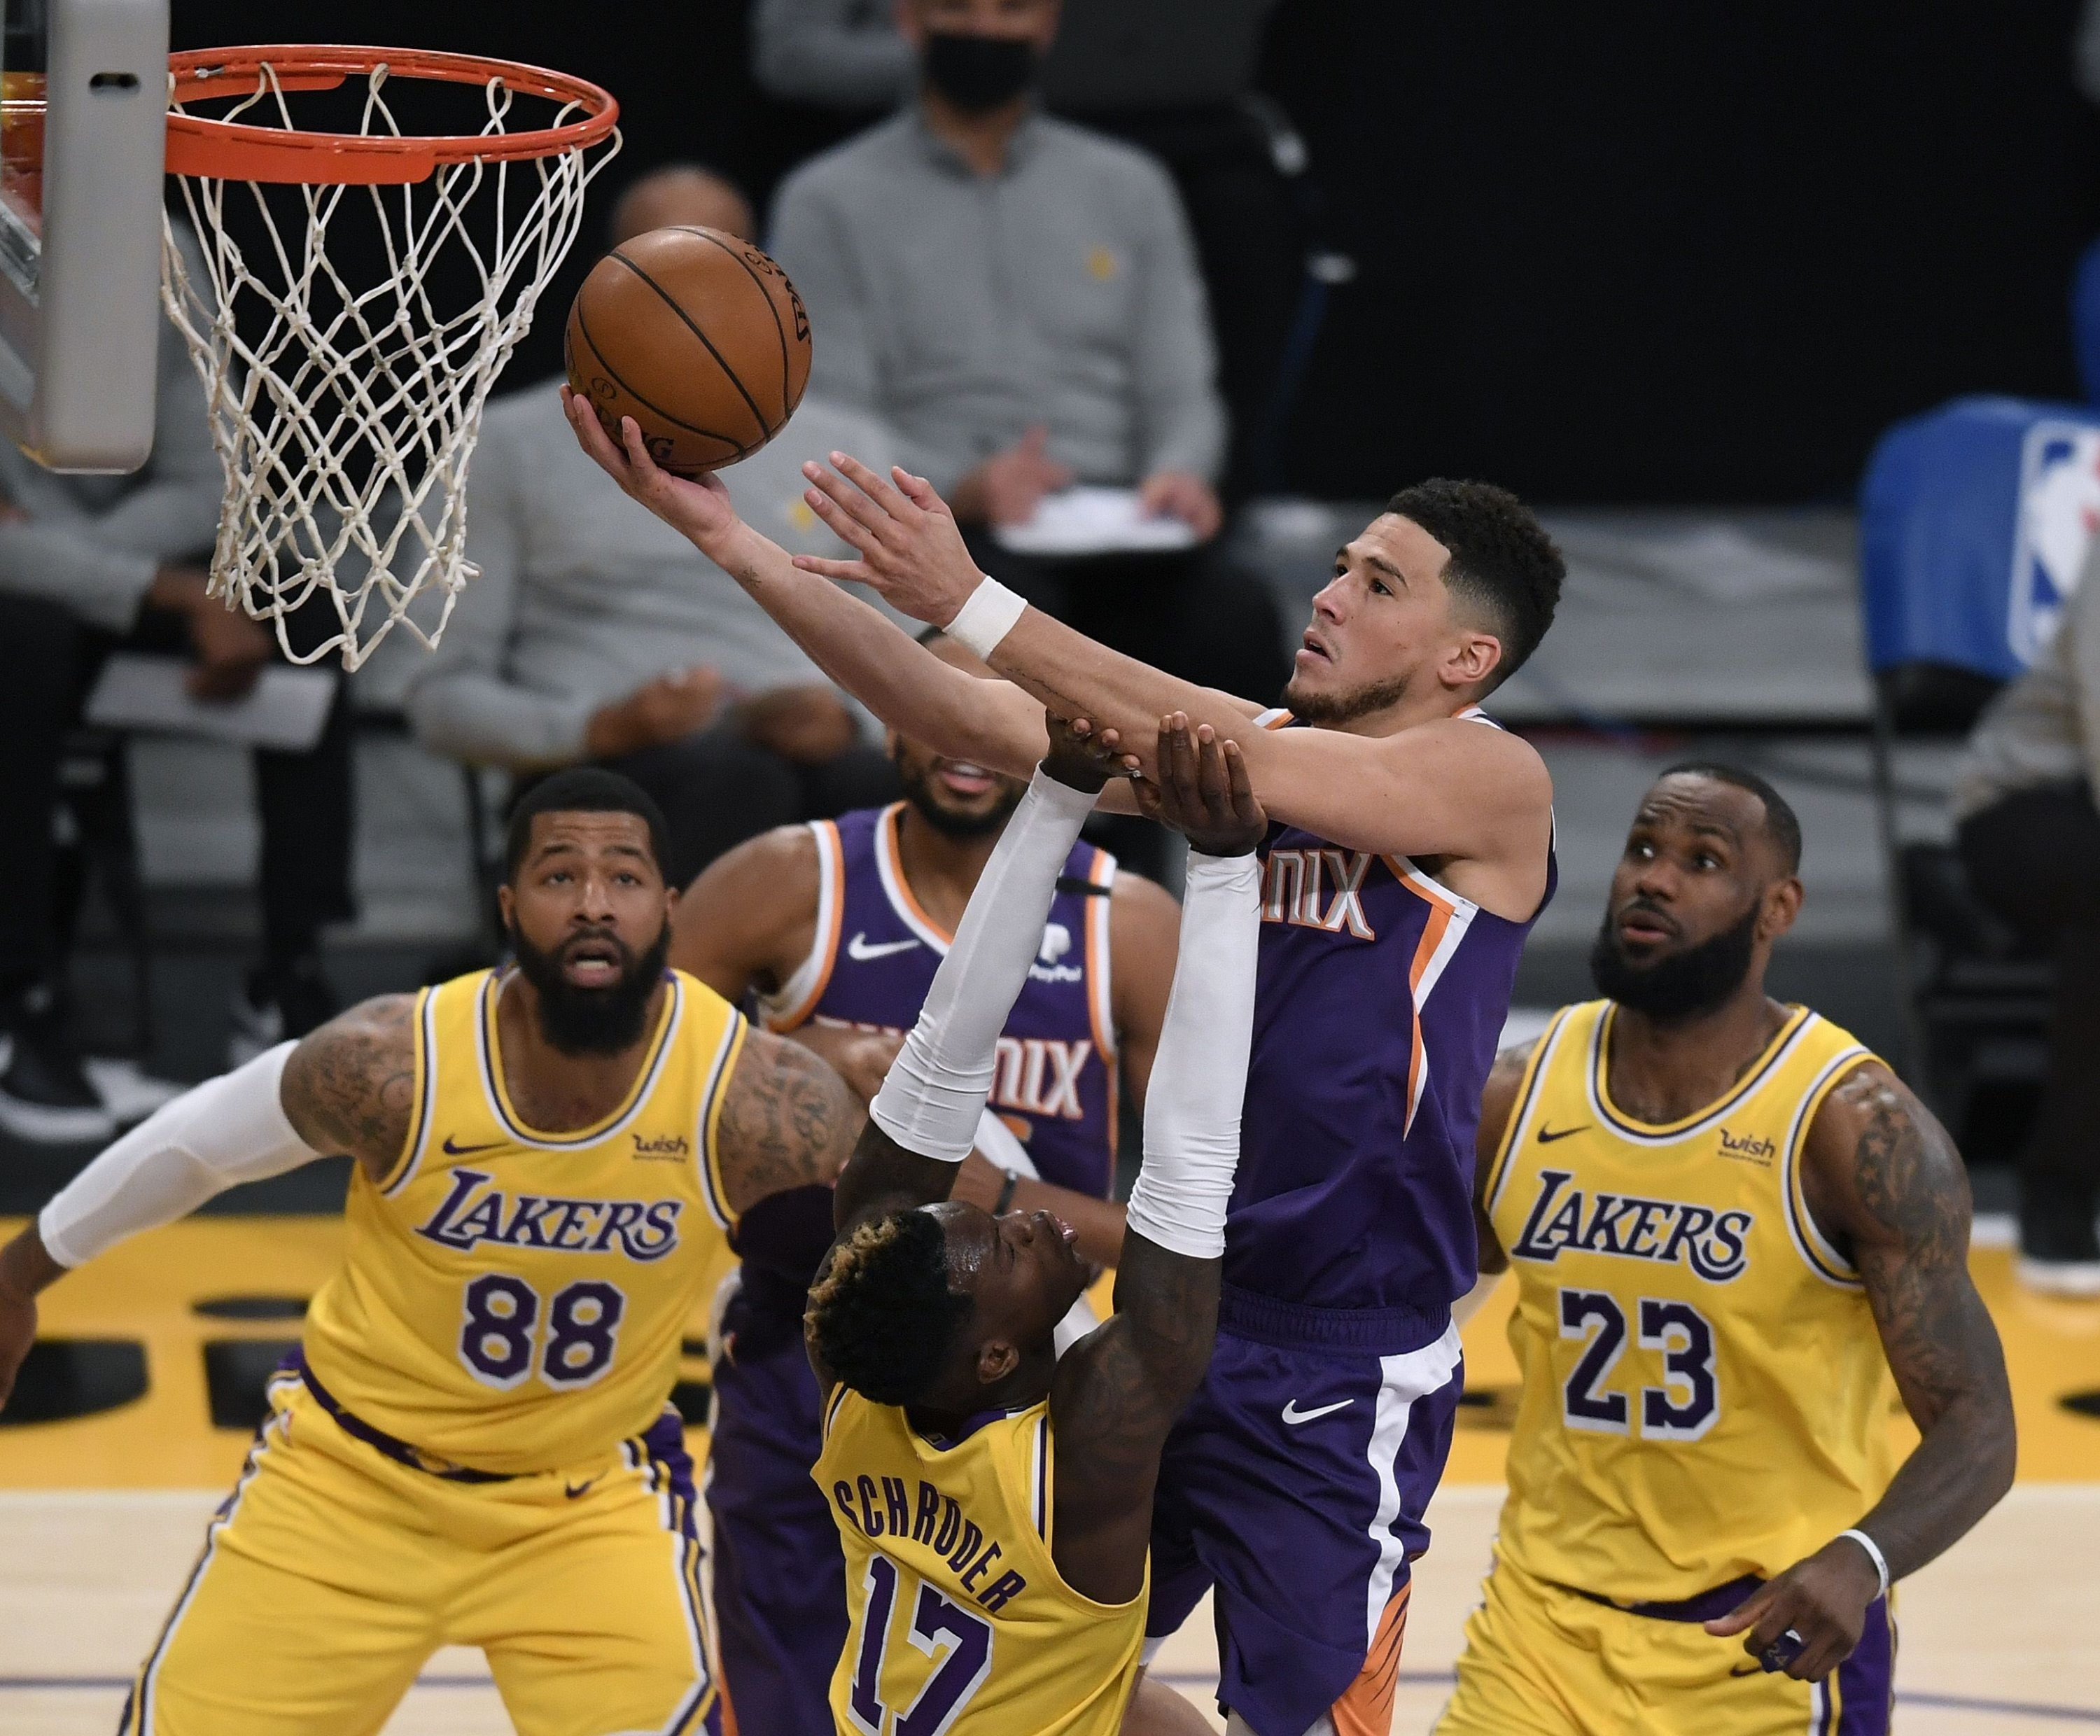 Phoenix Suns' Devin Booker (C) scores over Los Angeles Lakers' Dennis Schroder (L) as LeBron James (R) and Markieff Morris (2nd L) look on during an NBA match at Staples Center, Los Angeles, California, March 02, 2021. (AFP Photo)